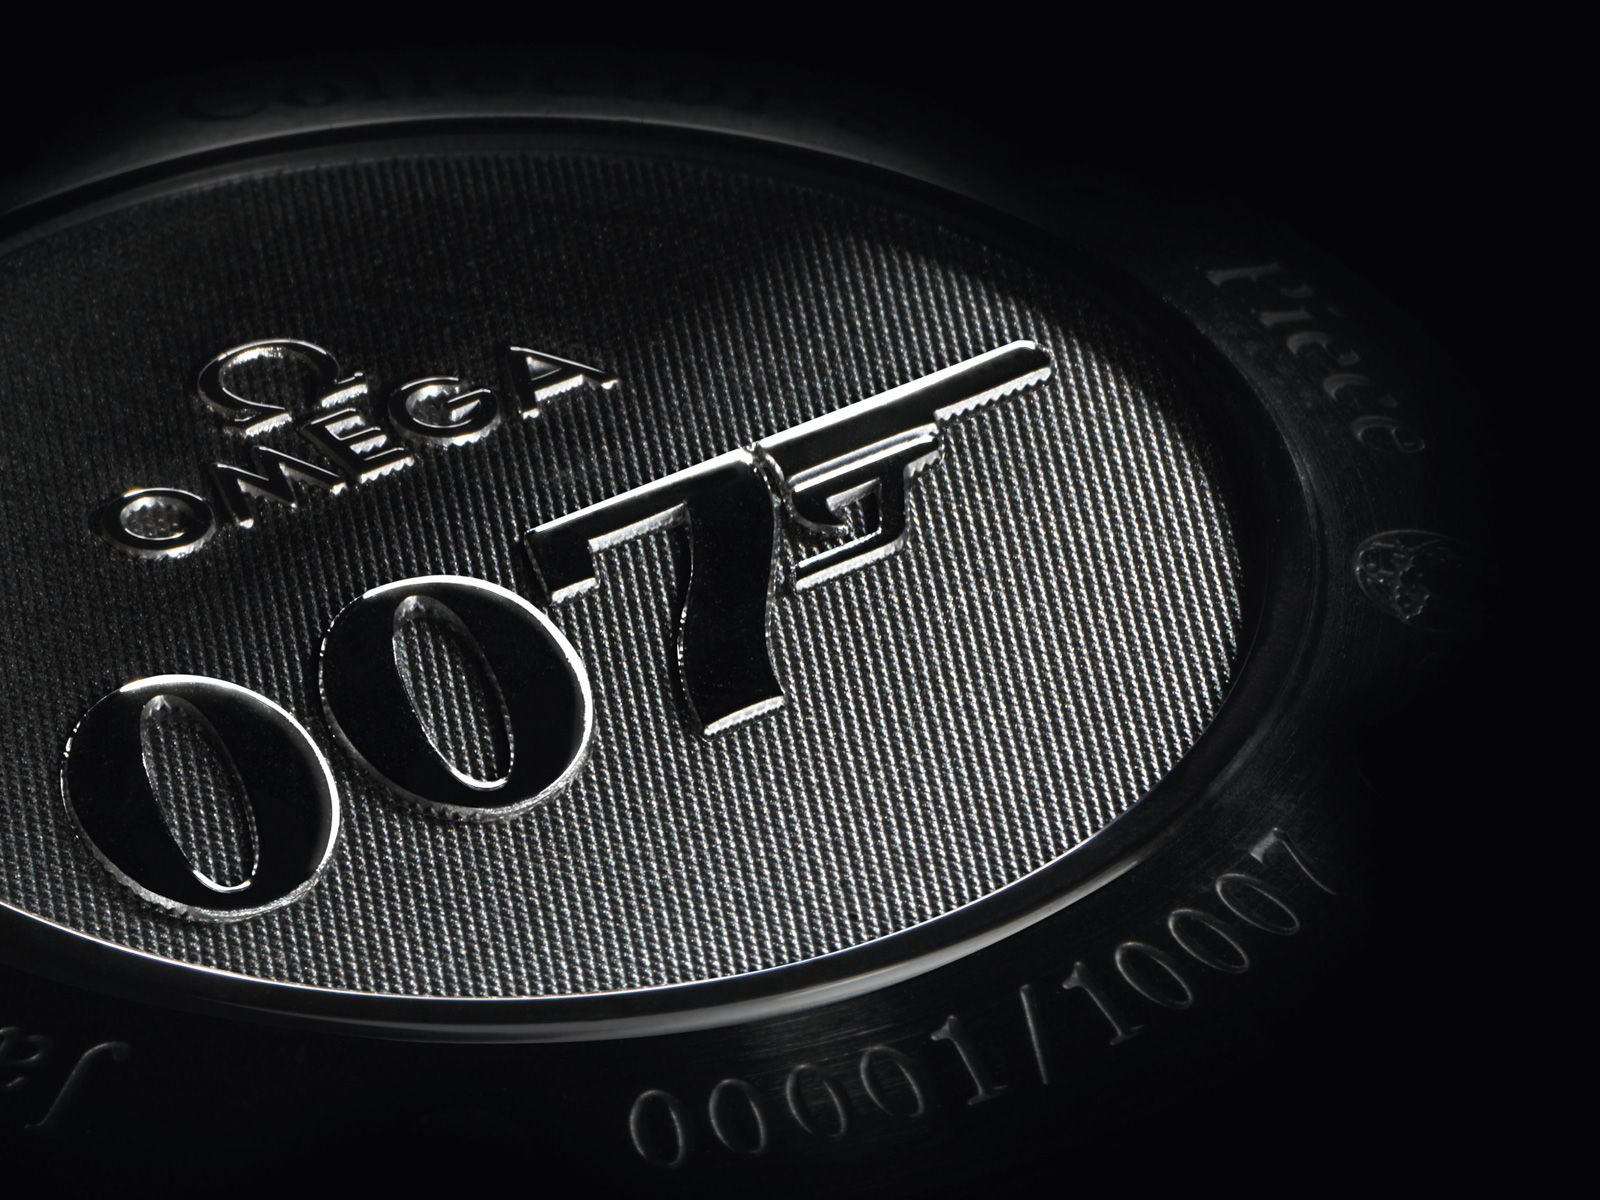 Omega Seamaster Watch 007 Logo Desktop Wallpaper Watches Logo Car Accessories For Guys Omega Watches Seamaster